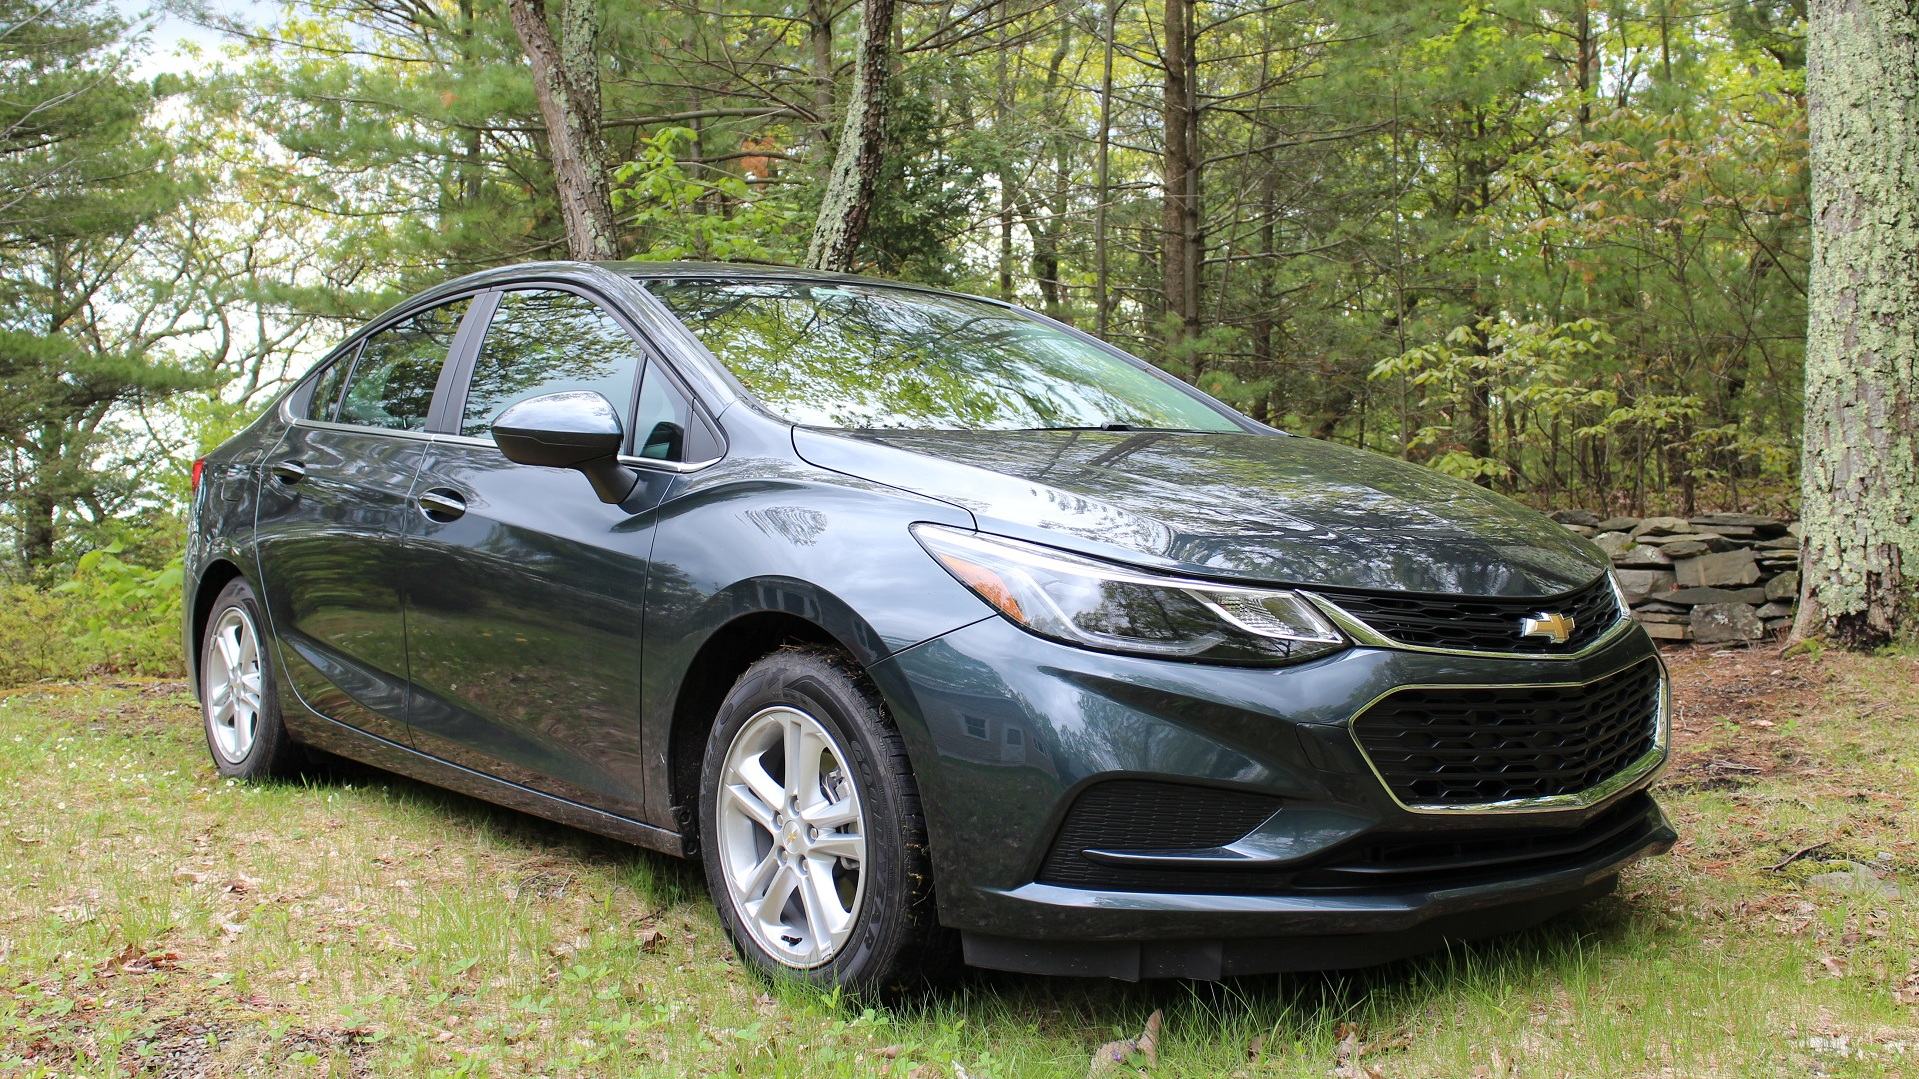 2017 chevrolet cruze diesel fuel economy review for automatic manual versions 2017 chevrolet cruze diesel fuel